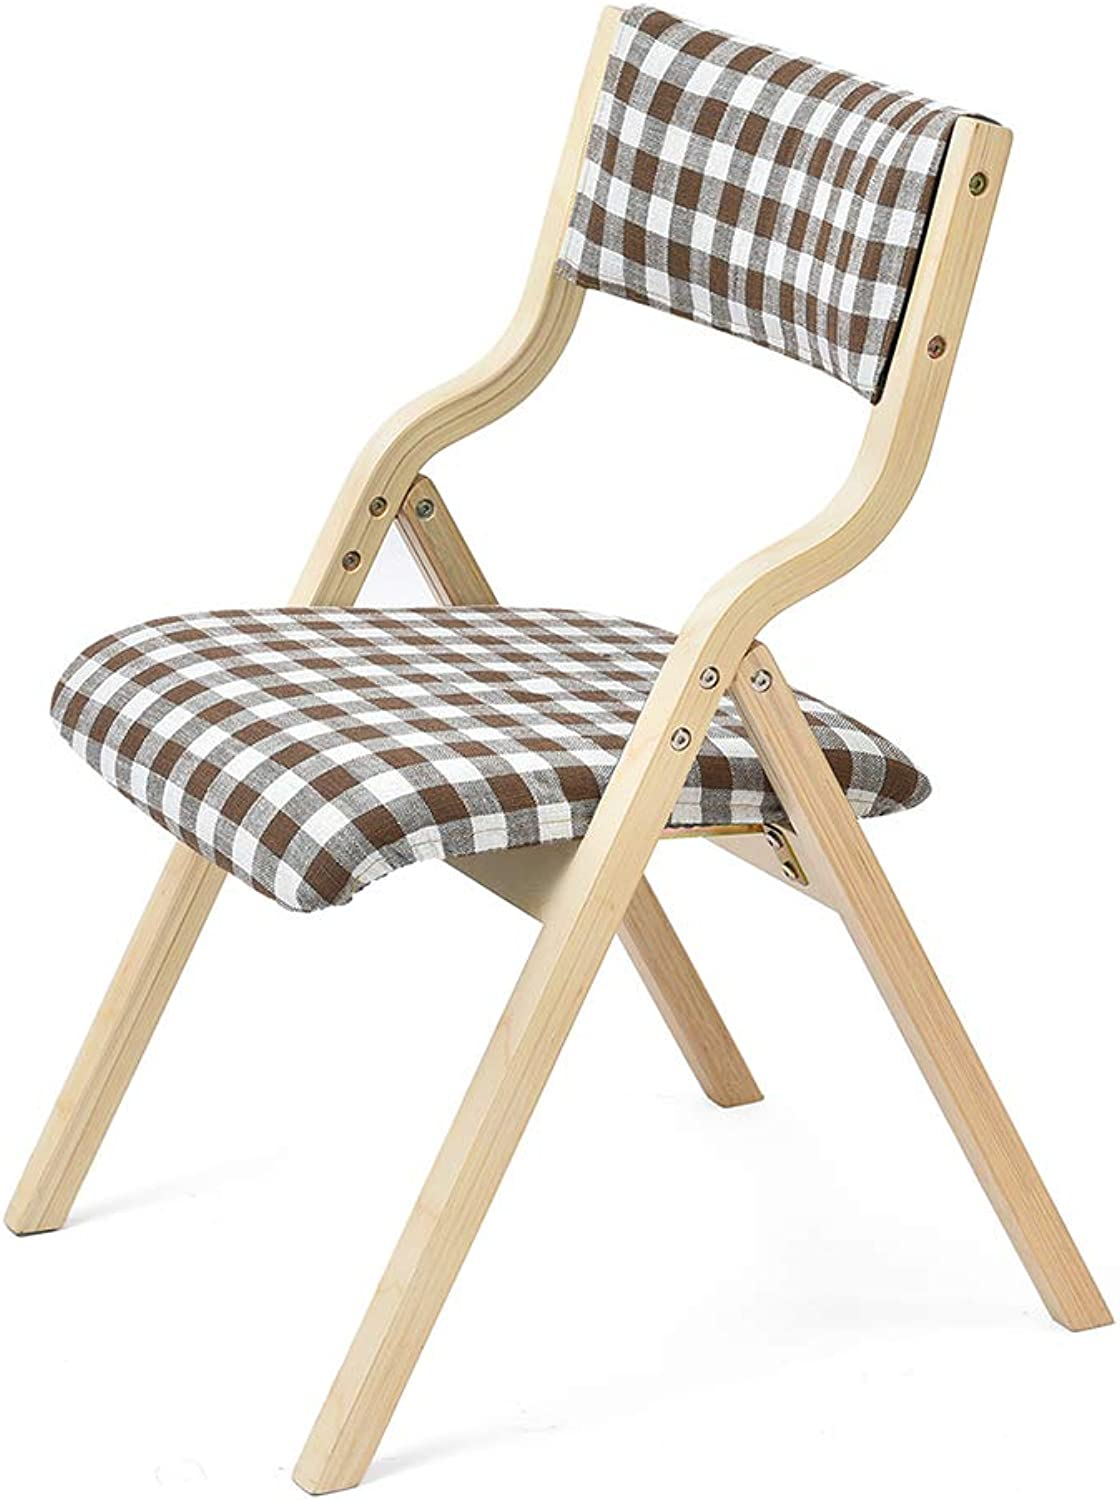 Folding Chair with Plaid Cloth Backrest Beech Lounge Chair with Removable Sponge Pad Creative Dining Room Chairs Heavy Duty